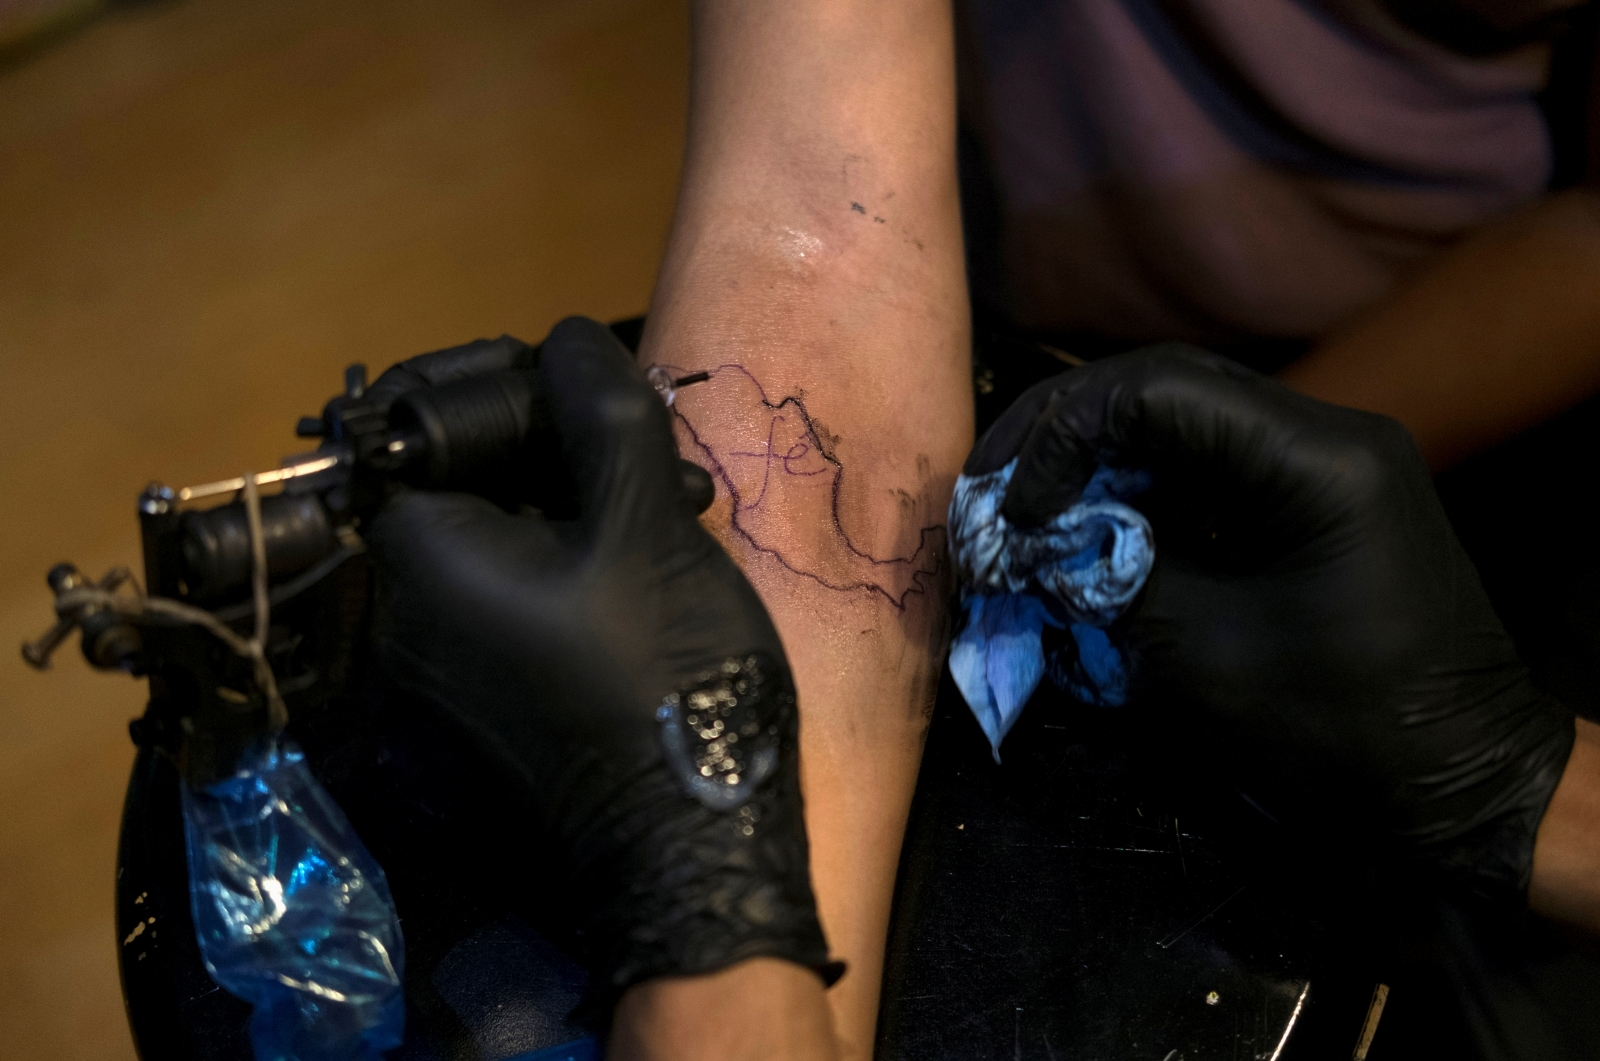 The Smart Bio-Sensitive, Color-Changing Tattoo Tracks the Blood Sugar Levels